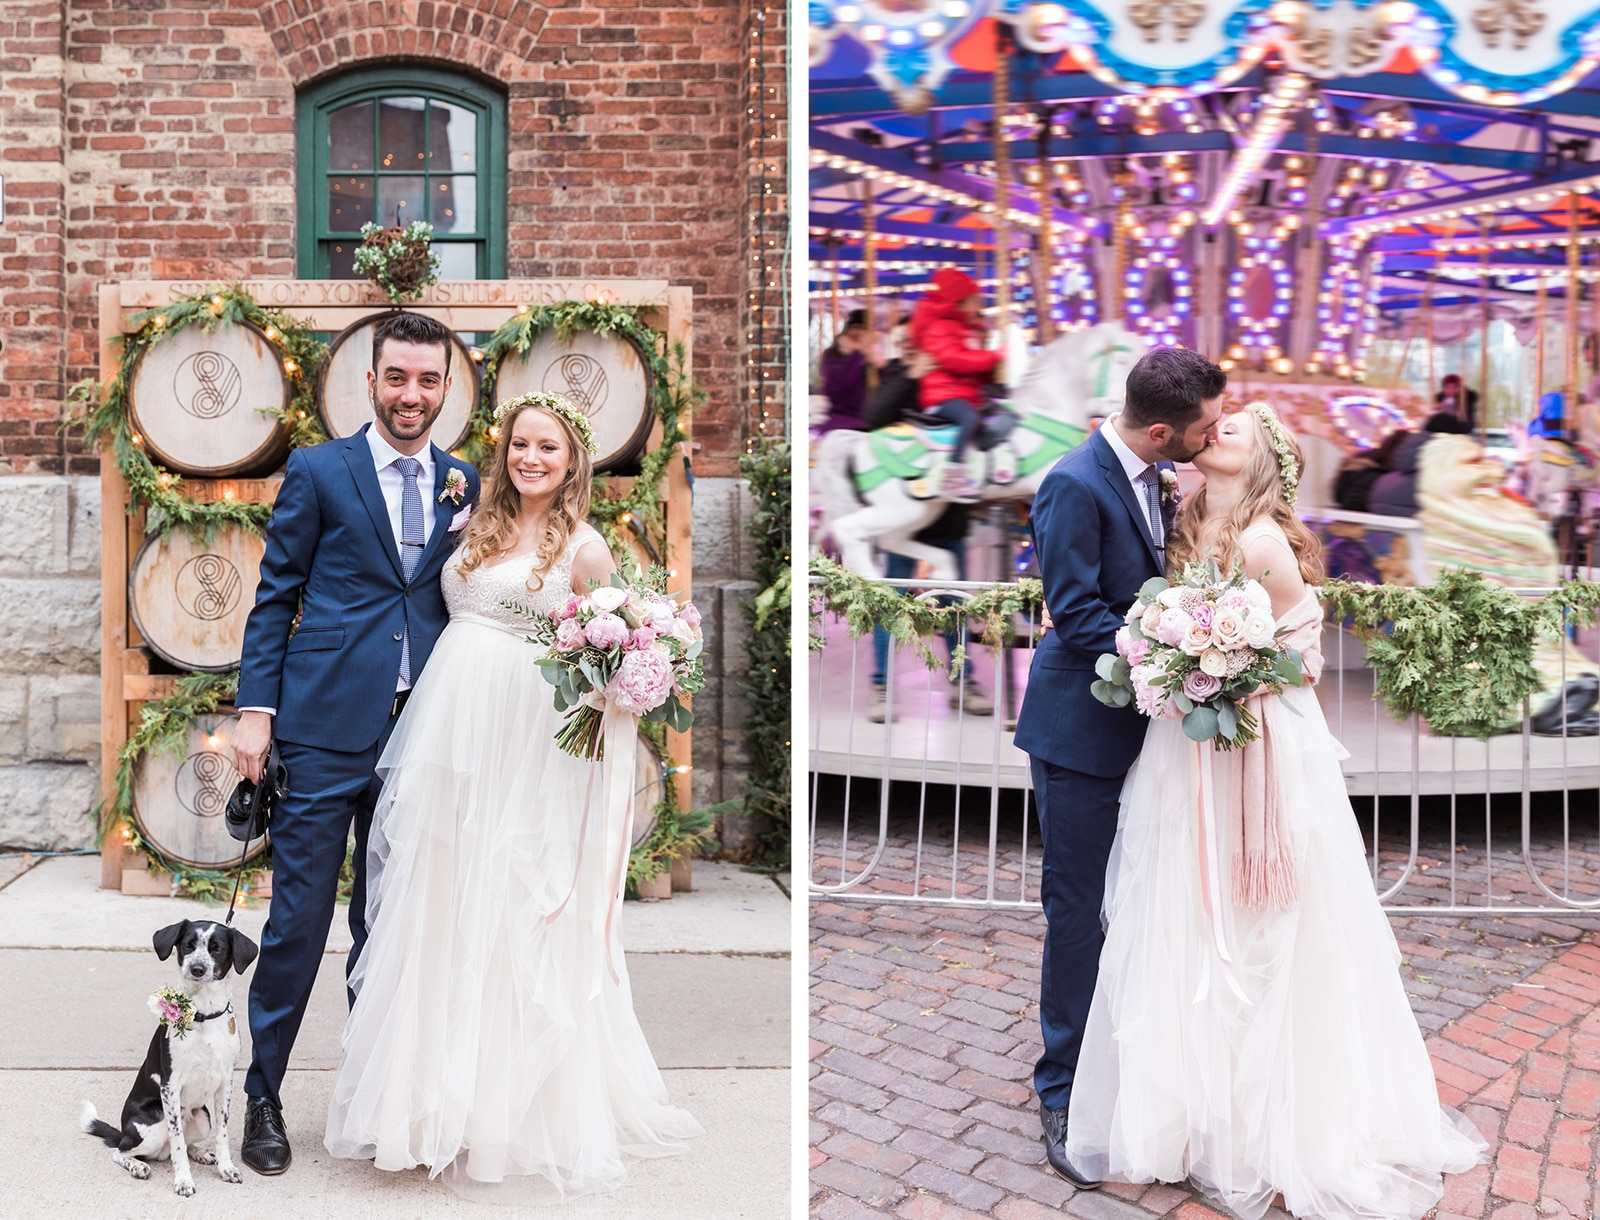 Toronto Christmas Market Wedding at Distillery District: Erin + Alex